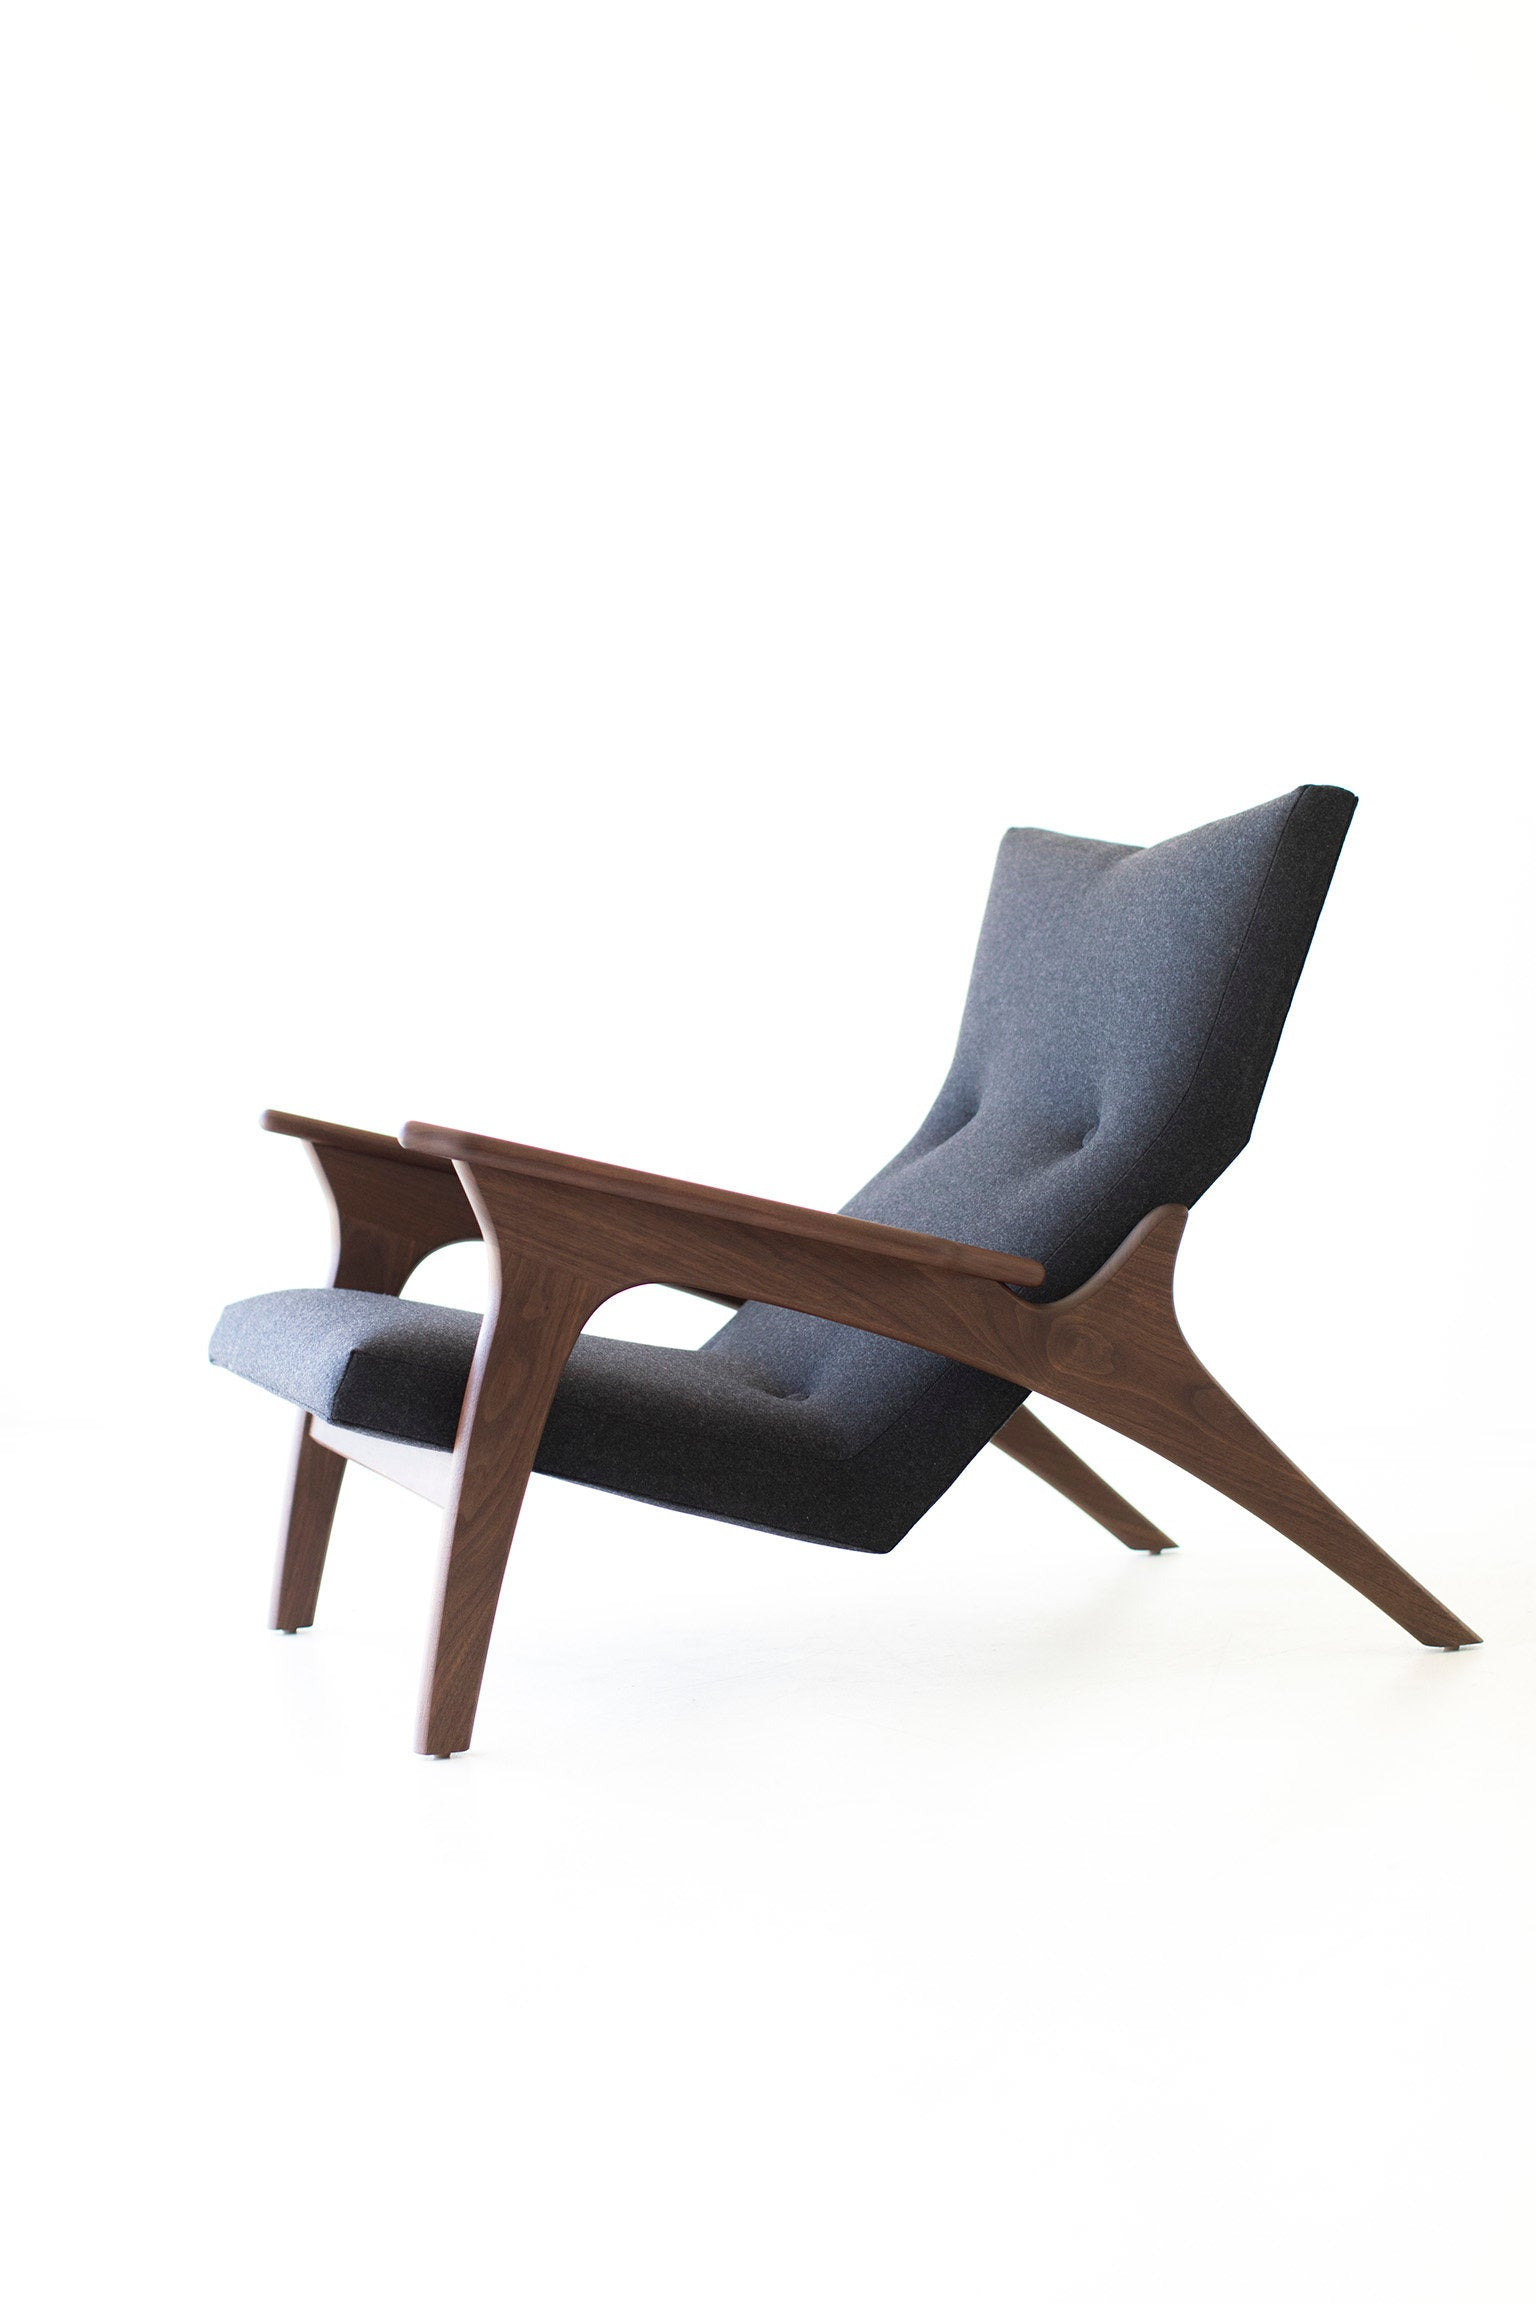 modern-lounge-chair-04